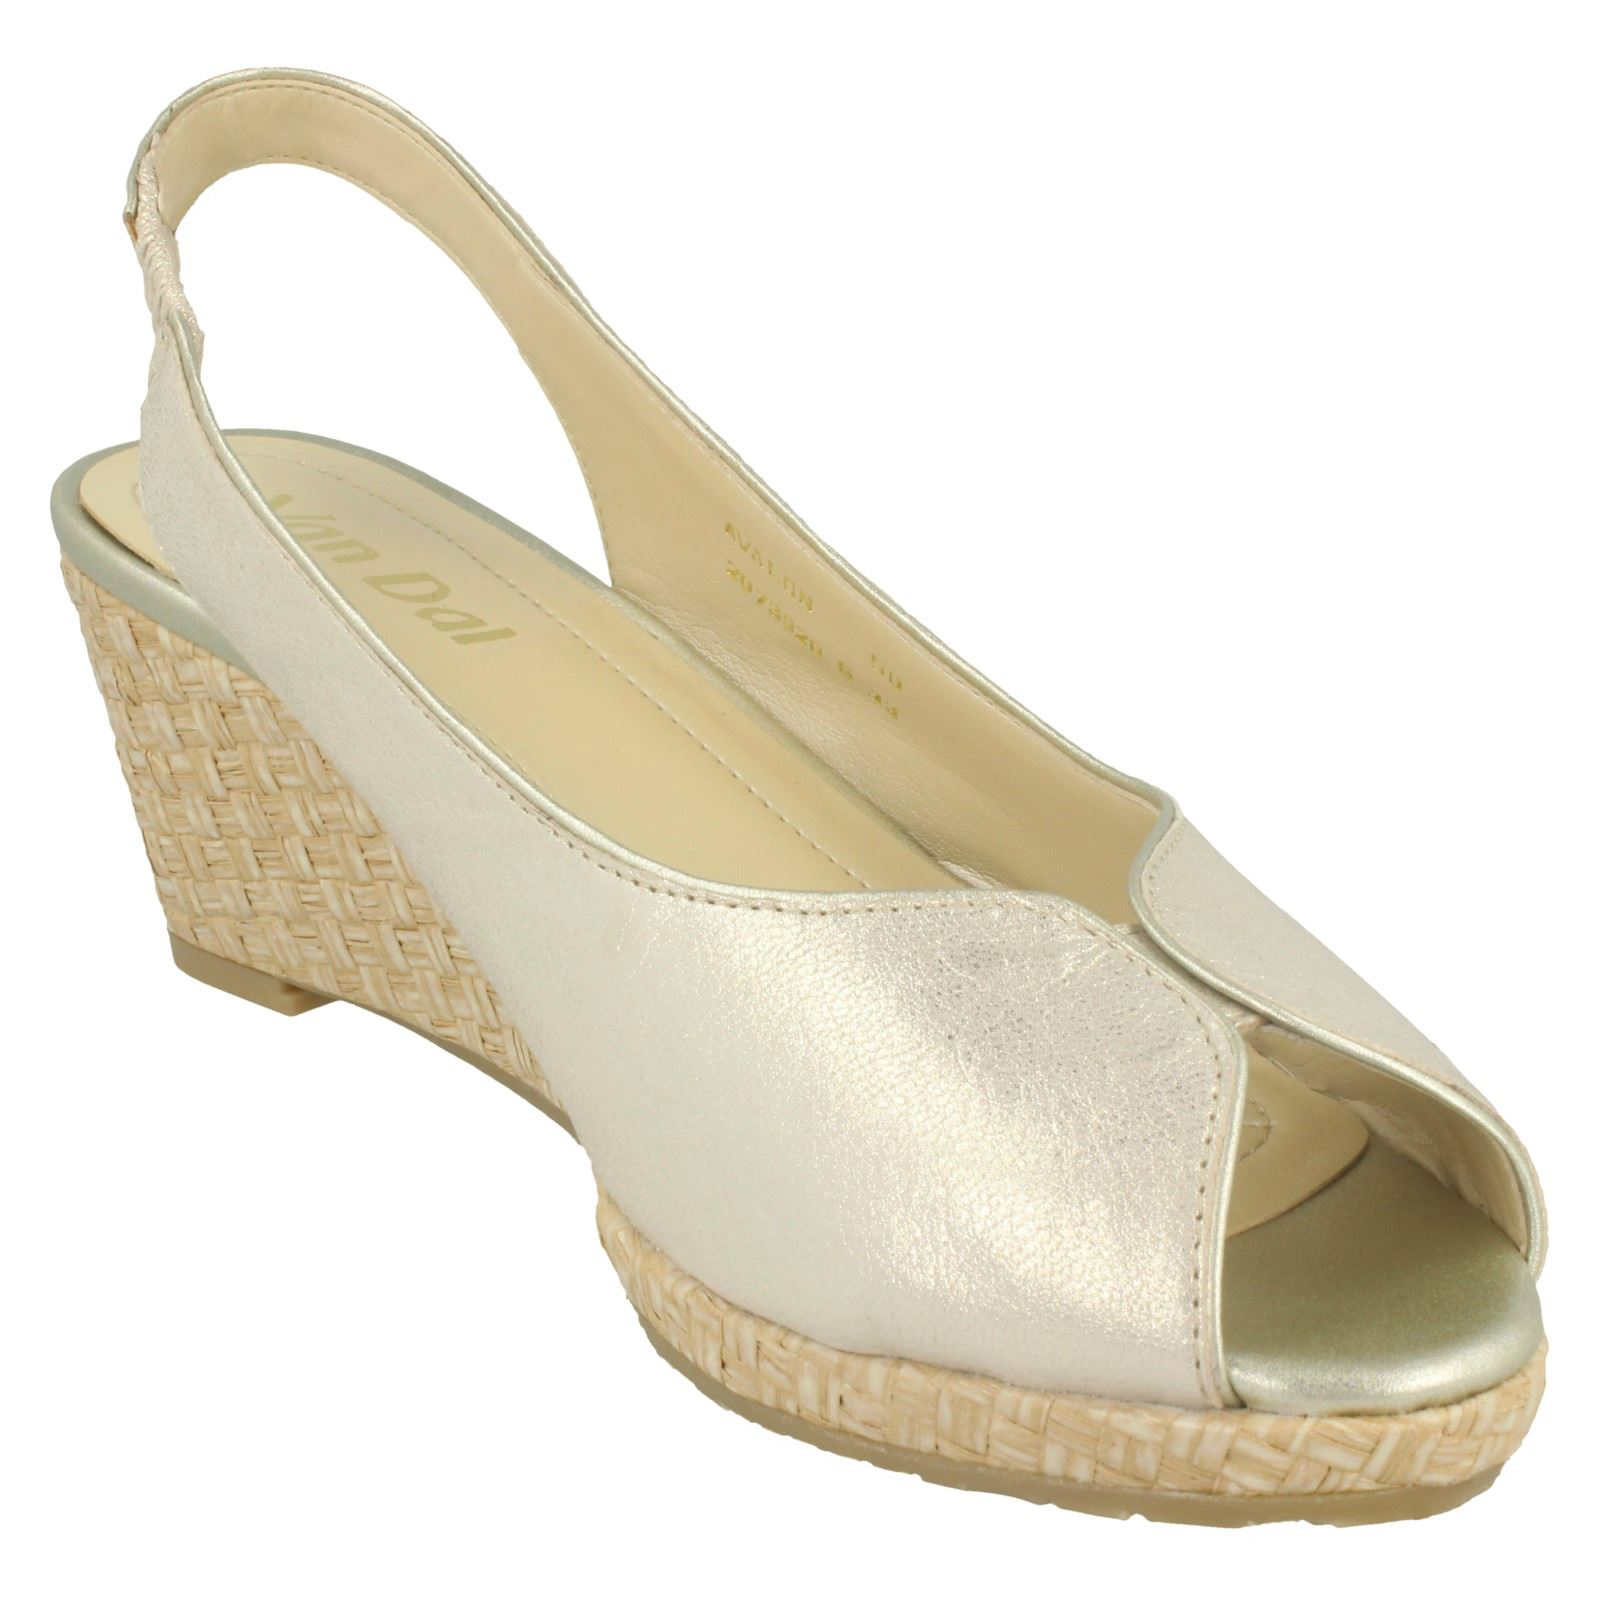 Ladies-Van-Dal-Leather-Wedge-Sandal-With-Woven-Detail-Avalon thumbnail 15